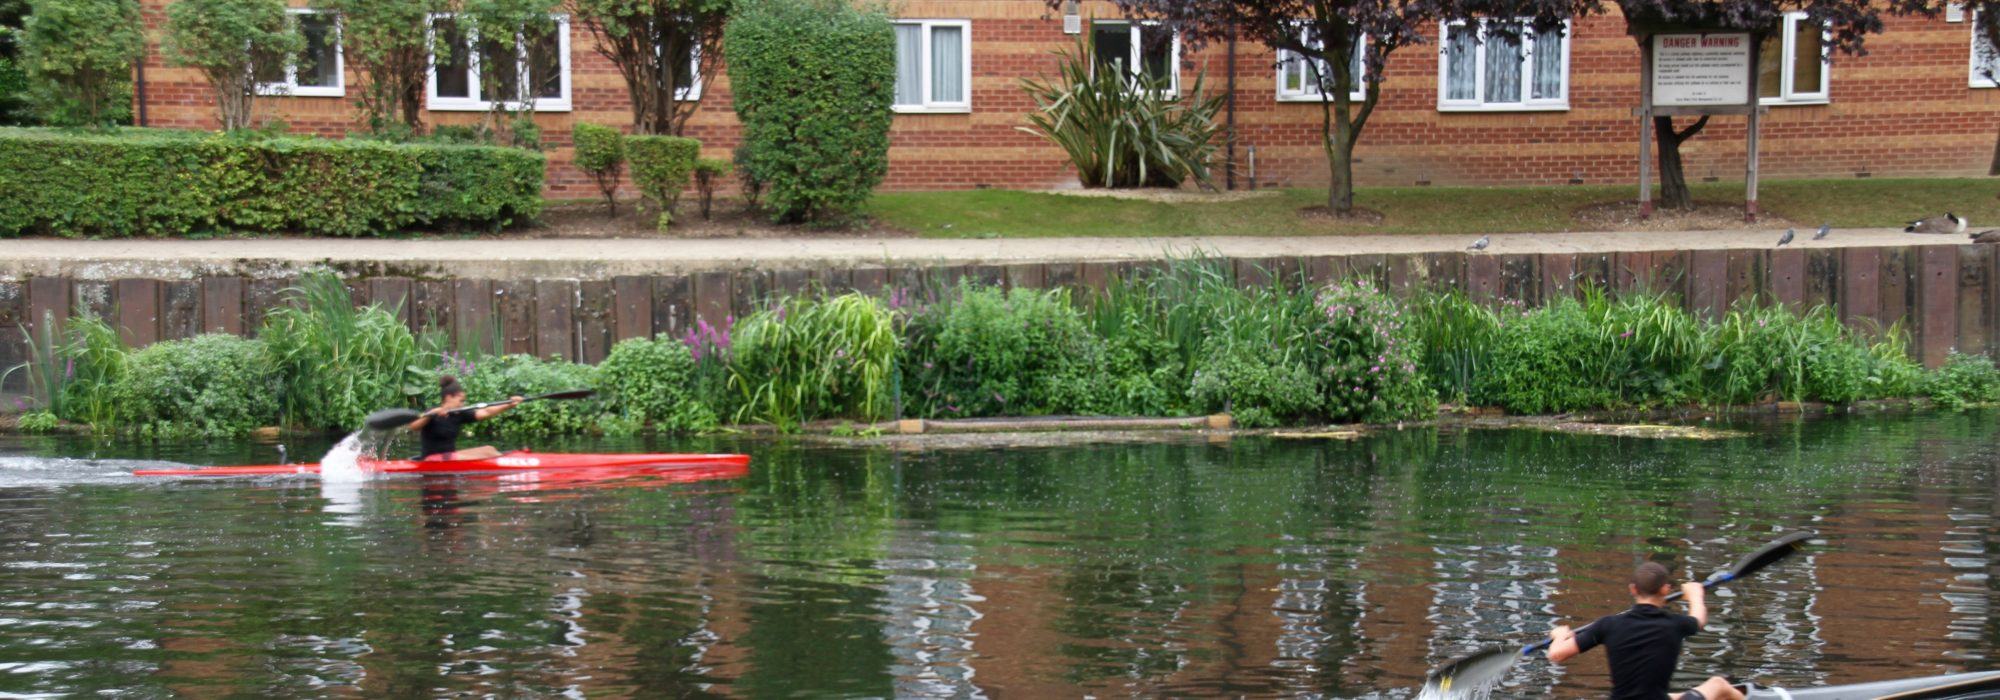 people in canoes near a new reedbed